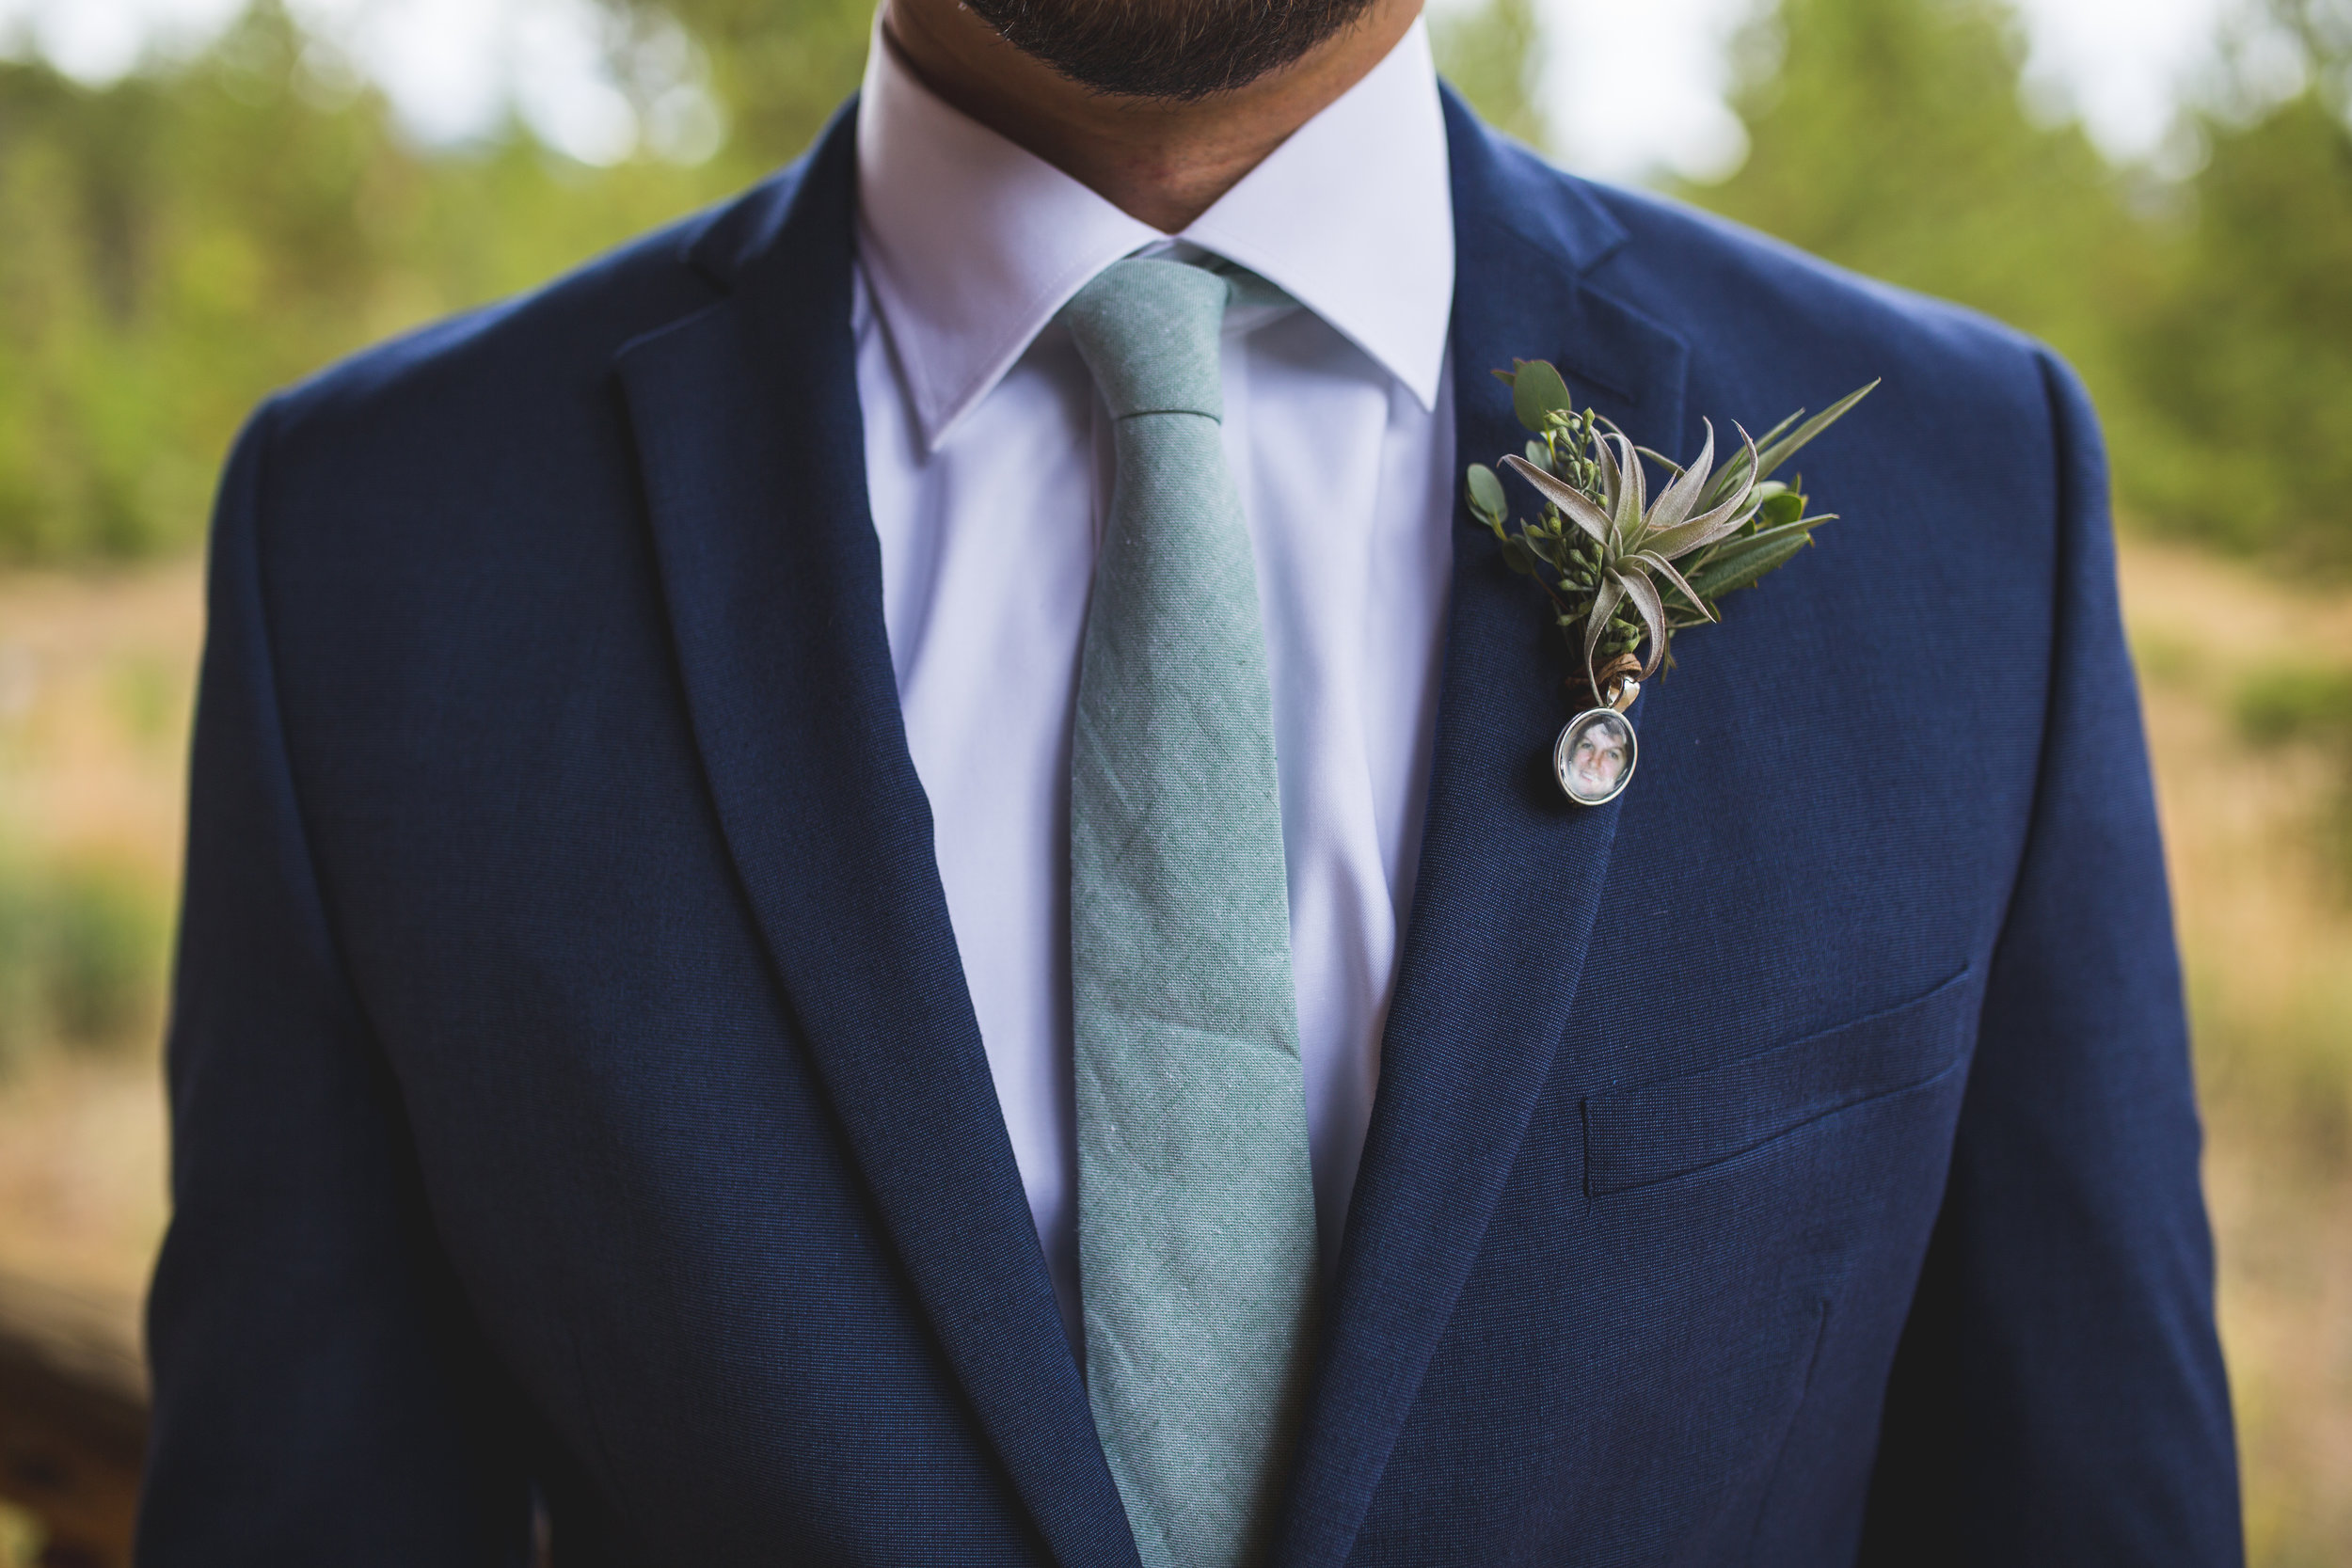 We love how much boutonnieres reflect their unique, personal wedding style.